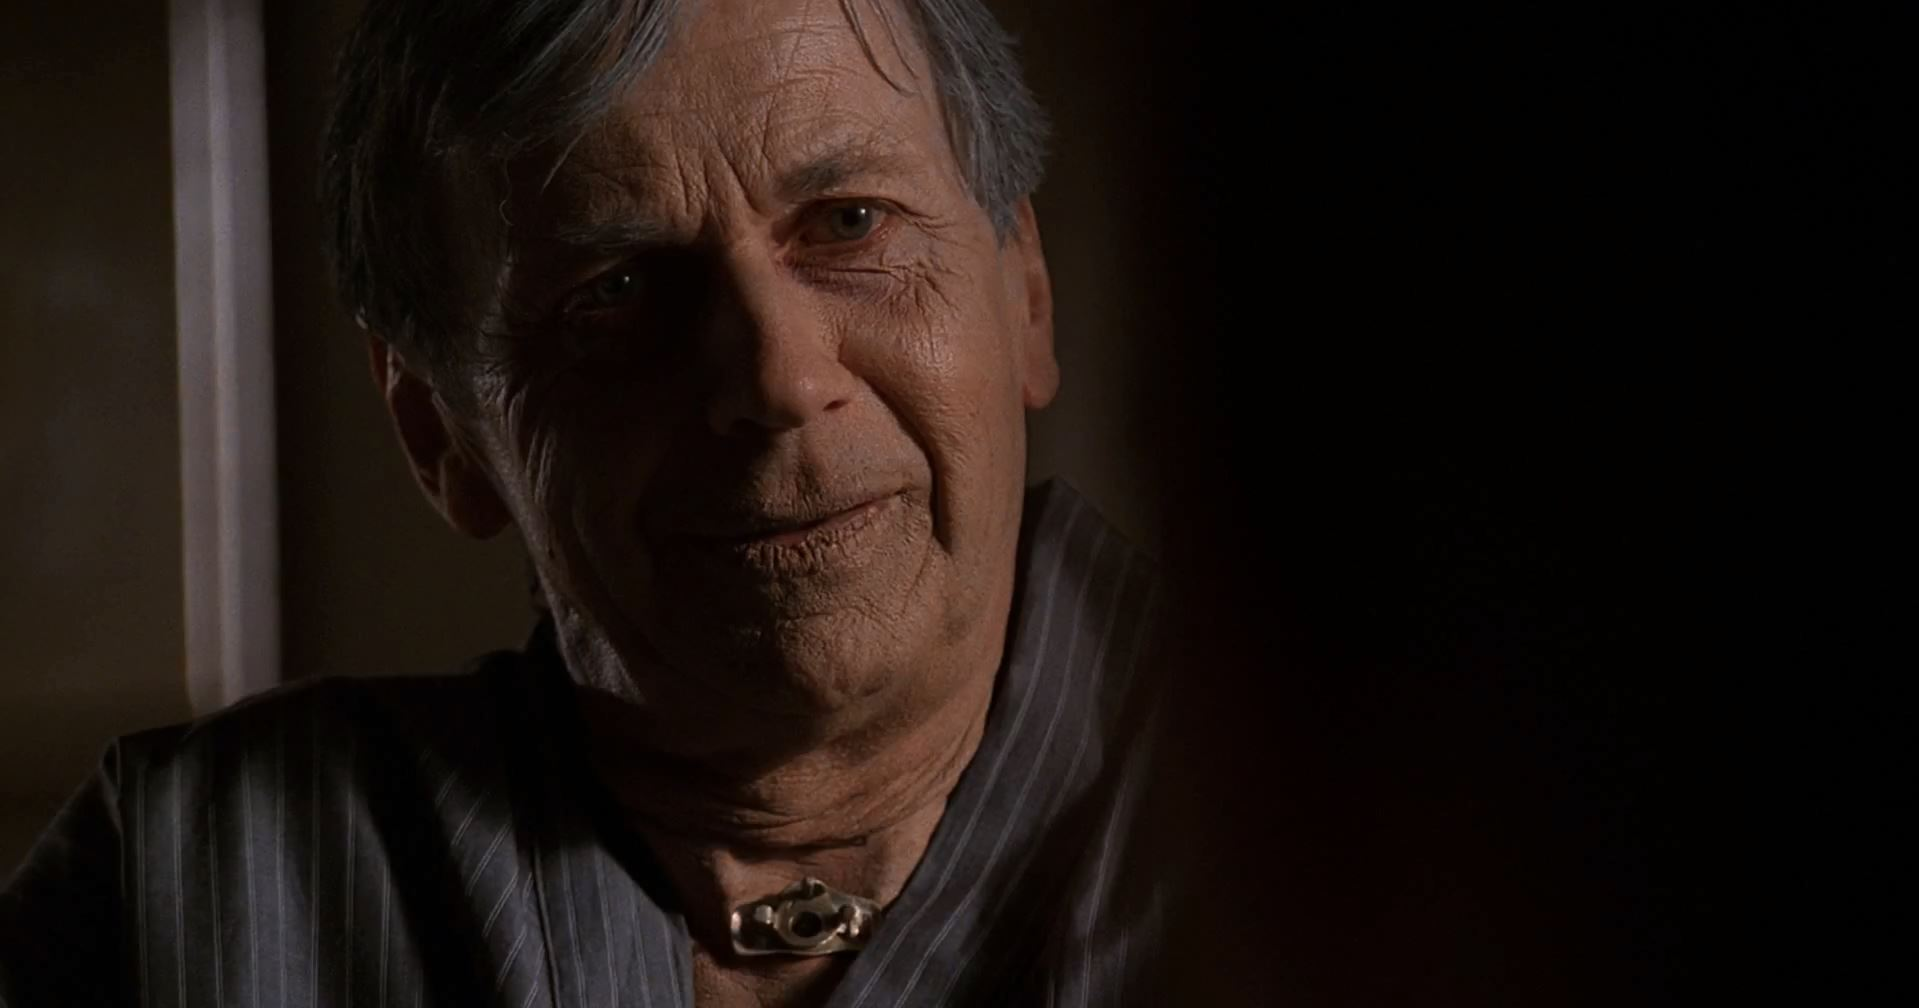 X-Files Revival miniseries. Aging Cigarette Smoking Man from season 9